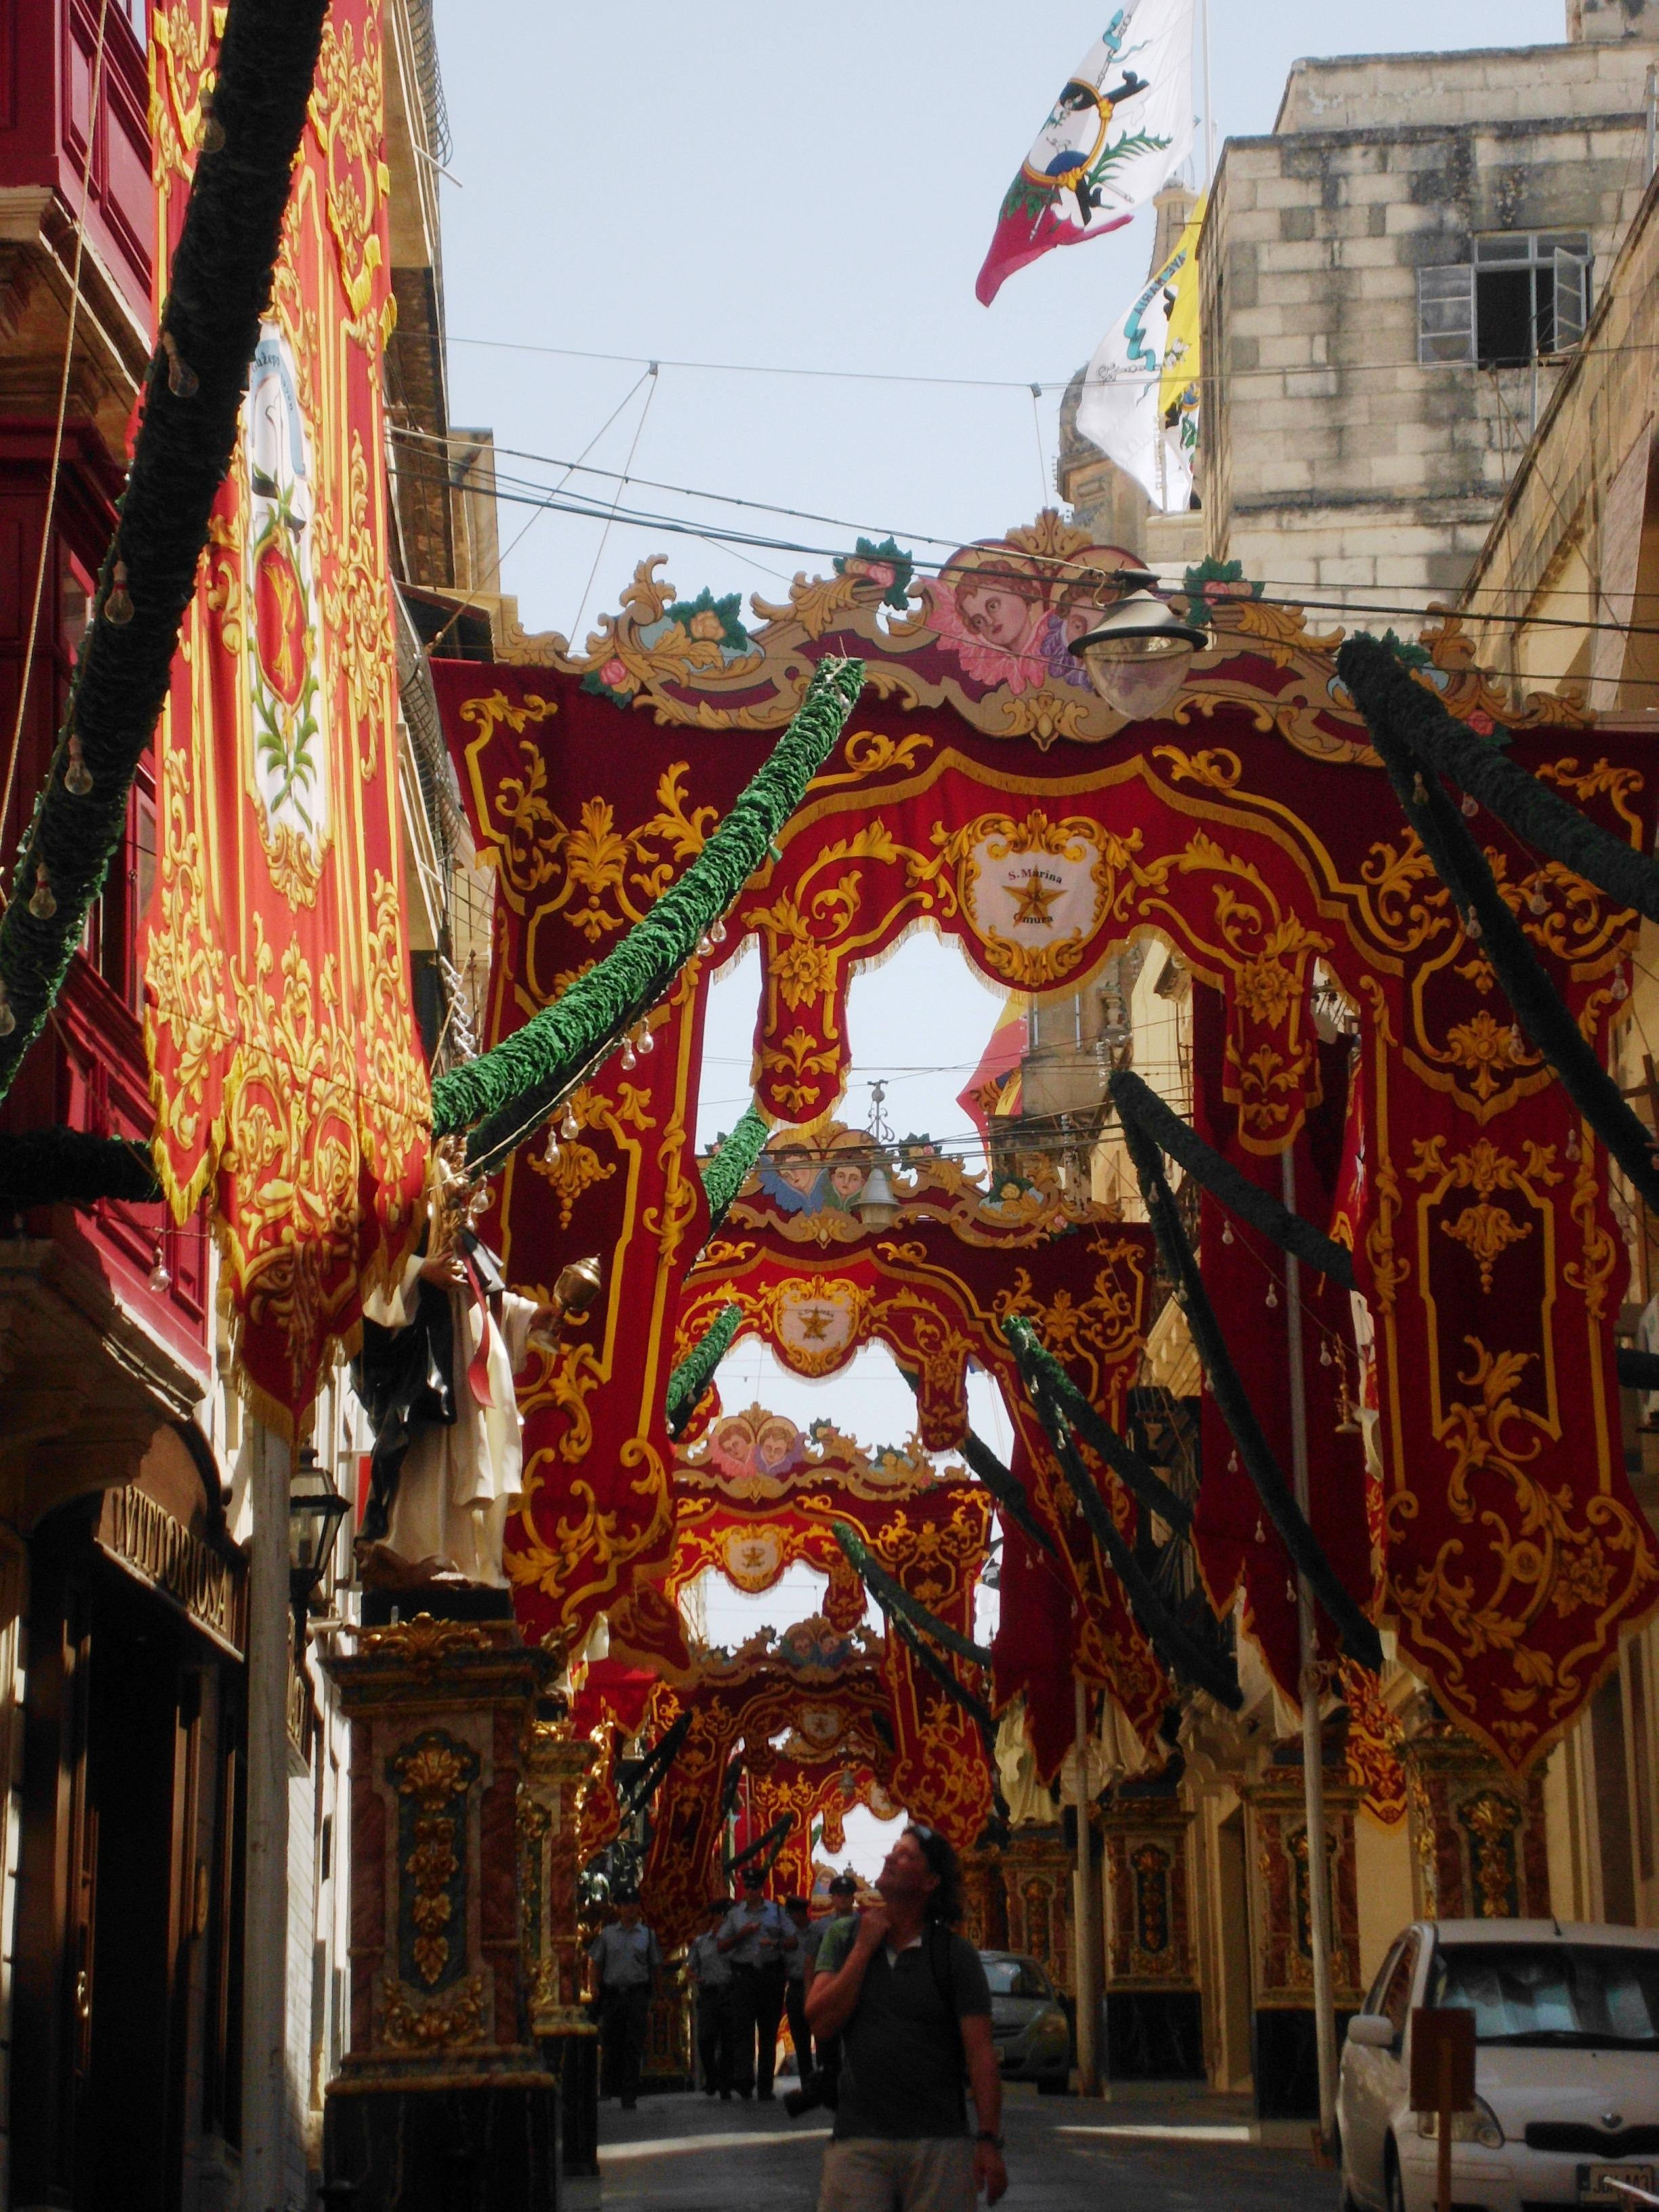 A Walk through Vittoriosa